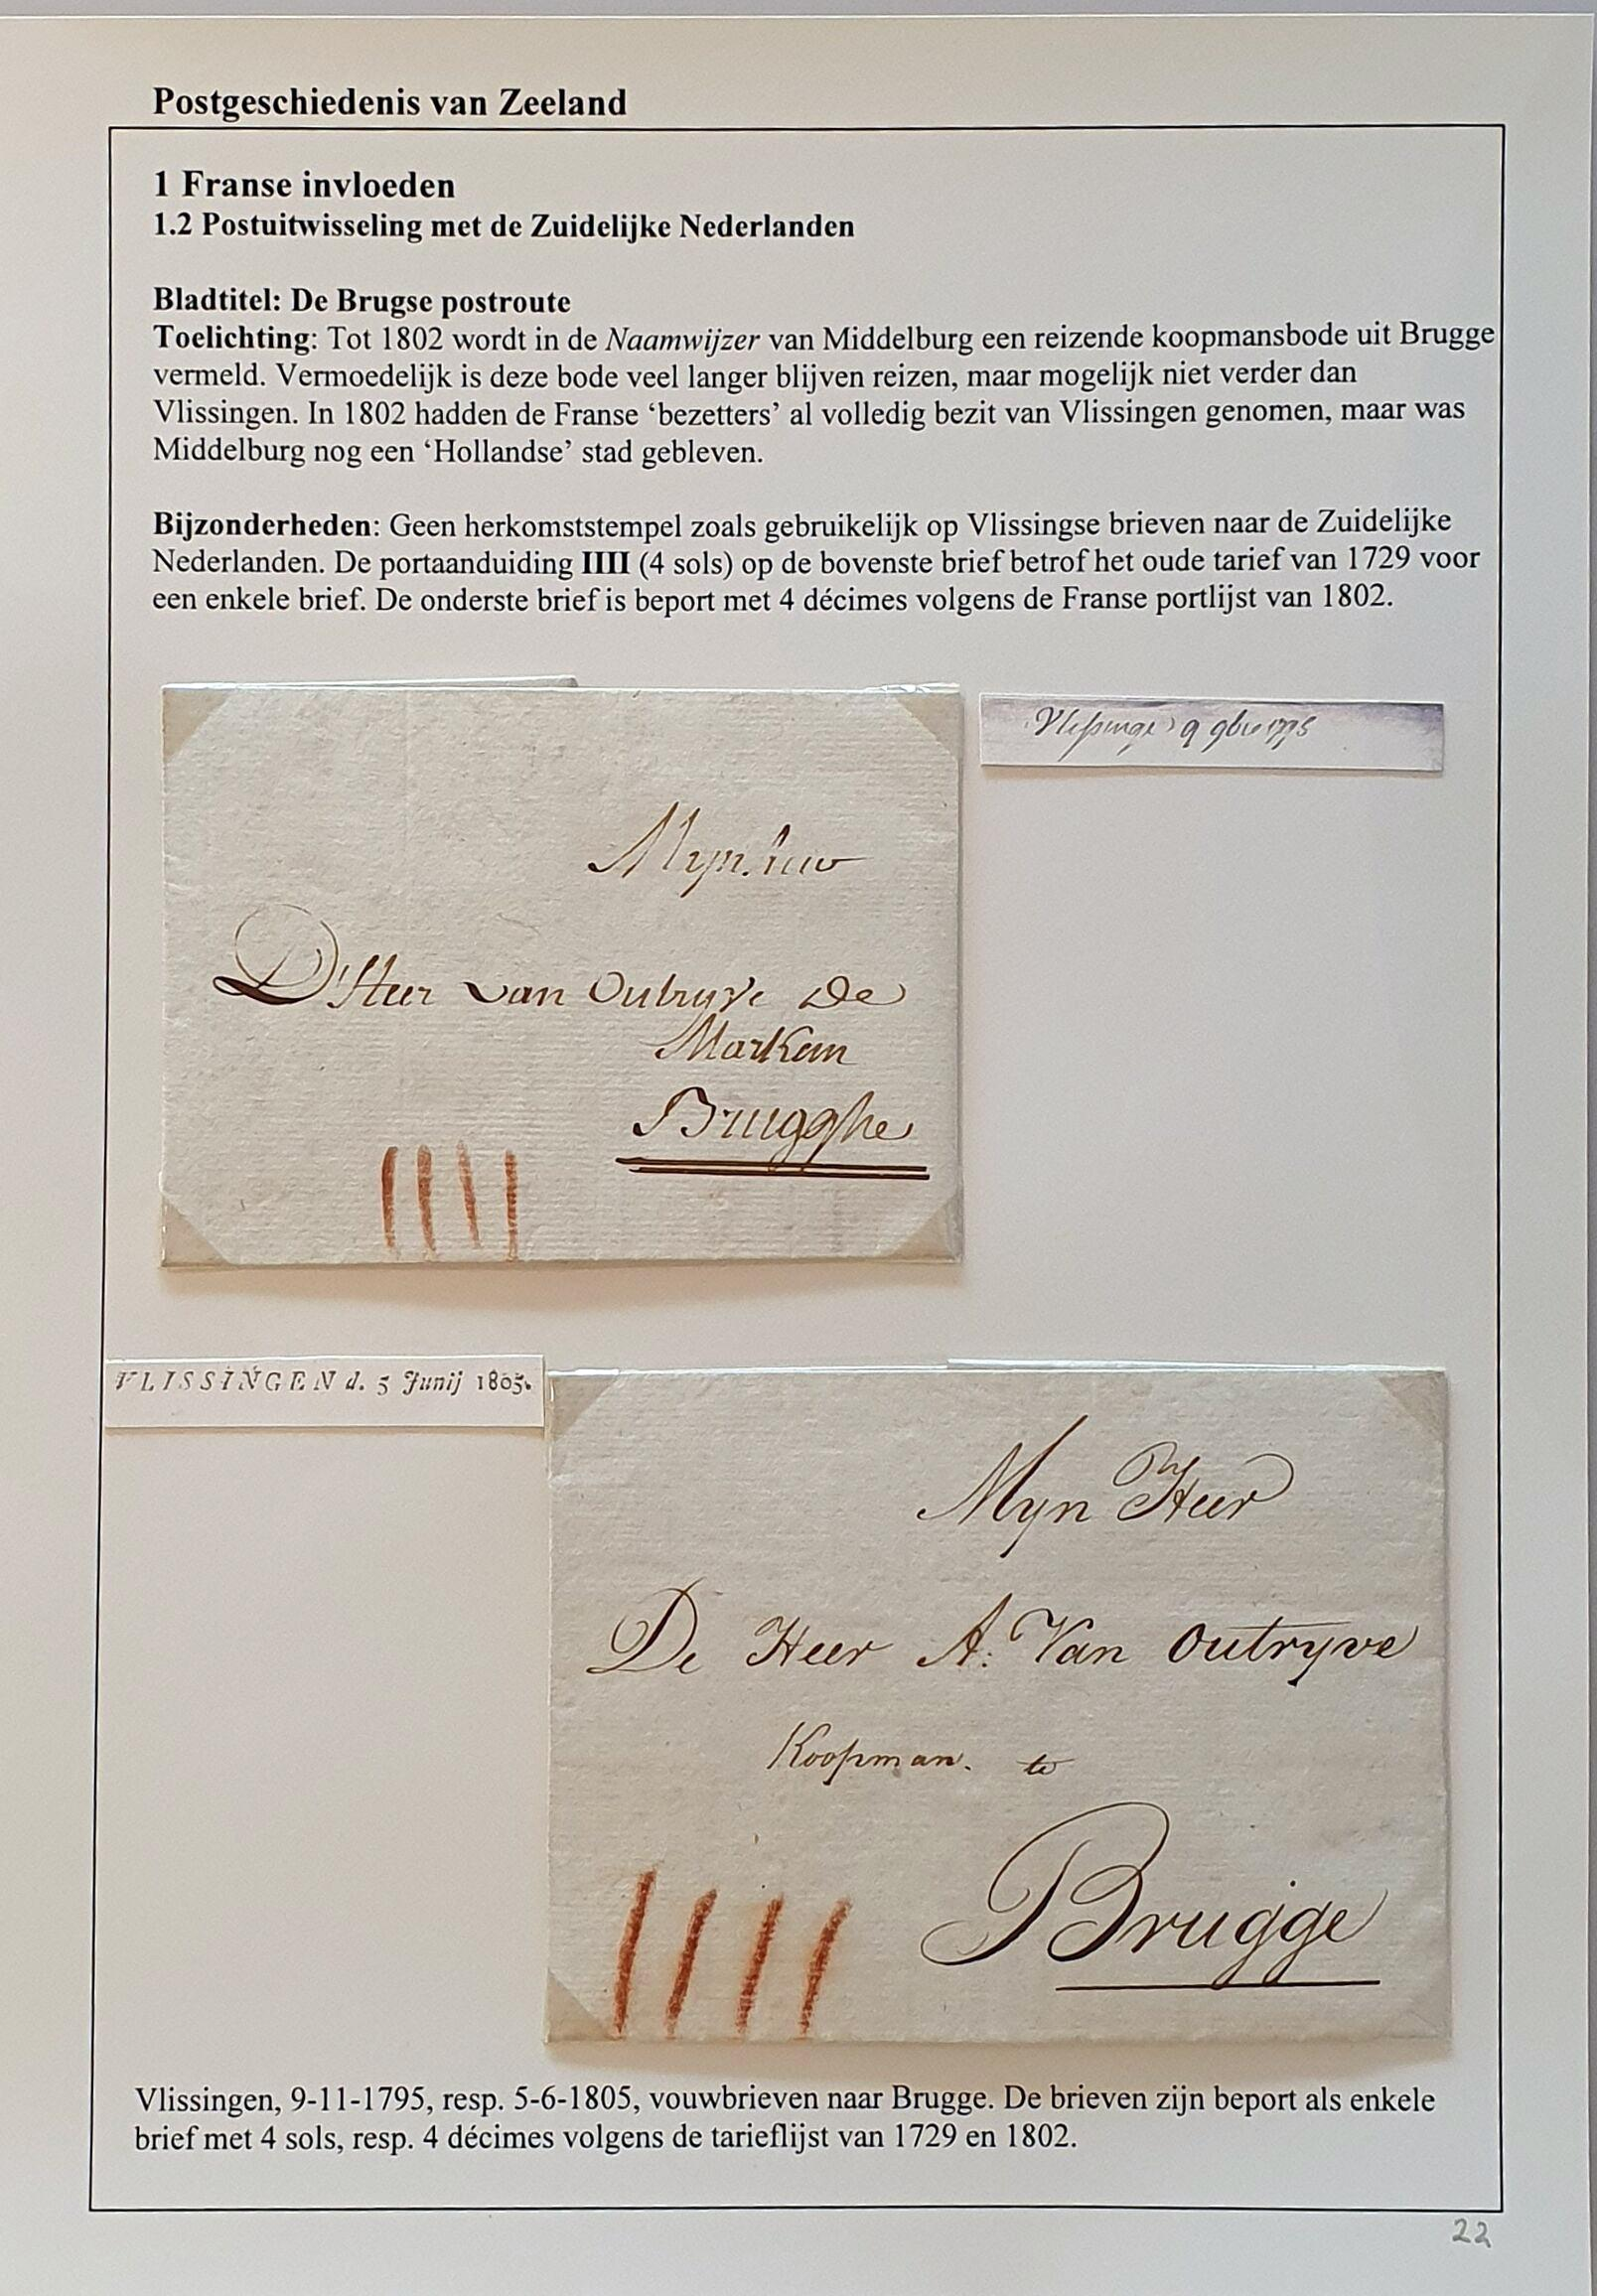 Lot 2322 - Netherlands and former colonies Netherlands -  Corinphila Veilingen Auction 250-253 - Day 3 - Netherlands and former colonies - Single lots & Picture postcards